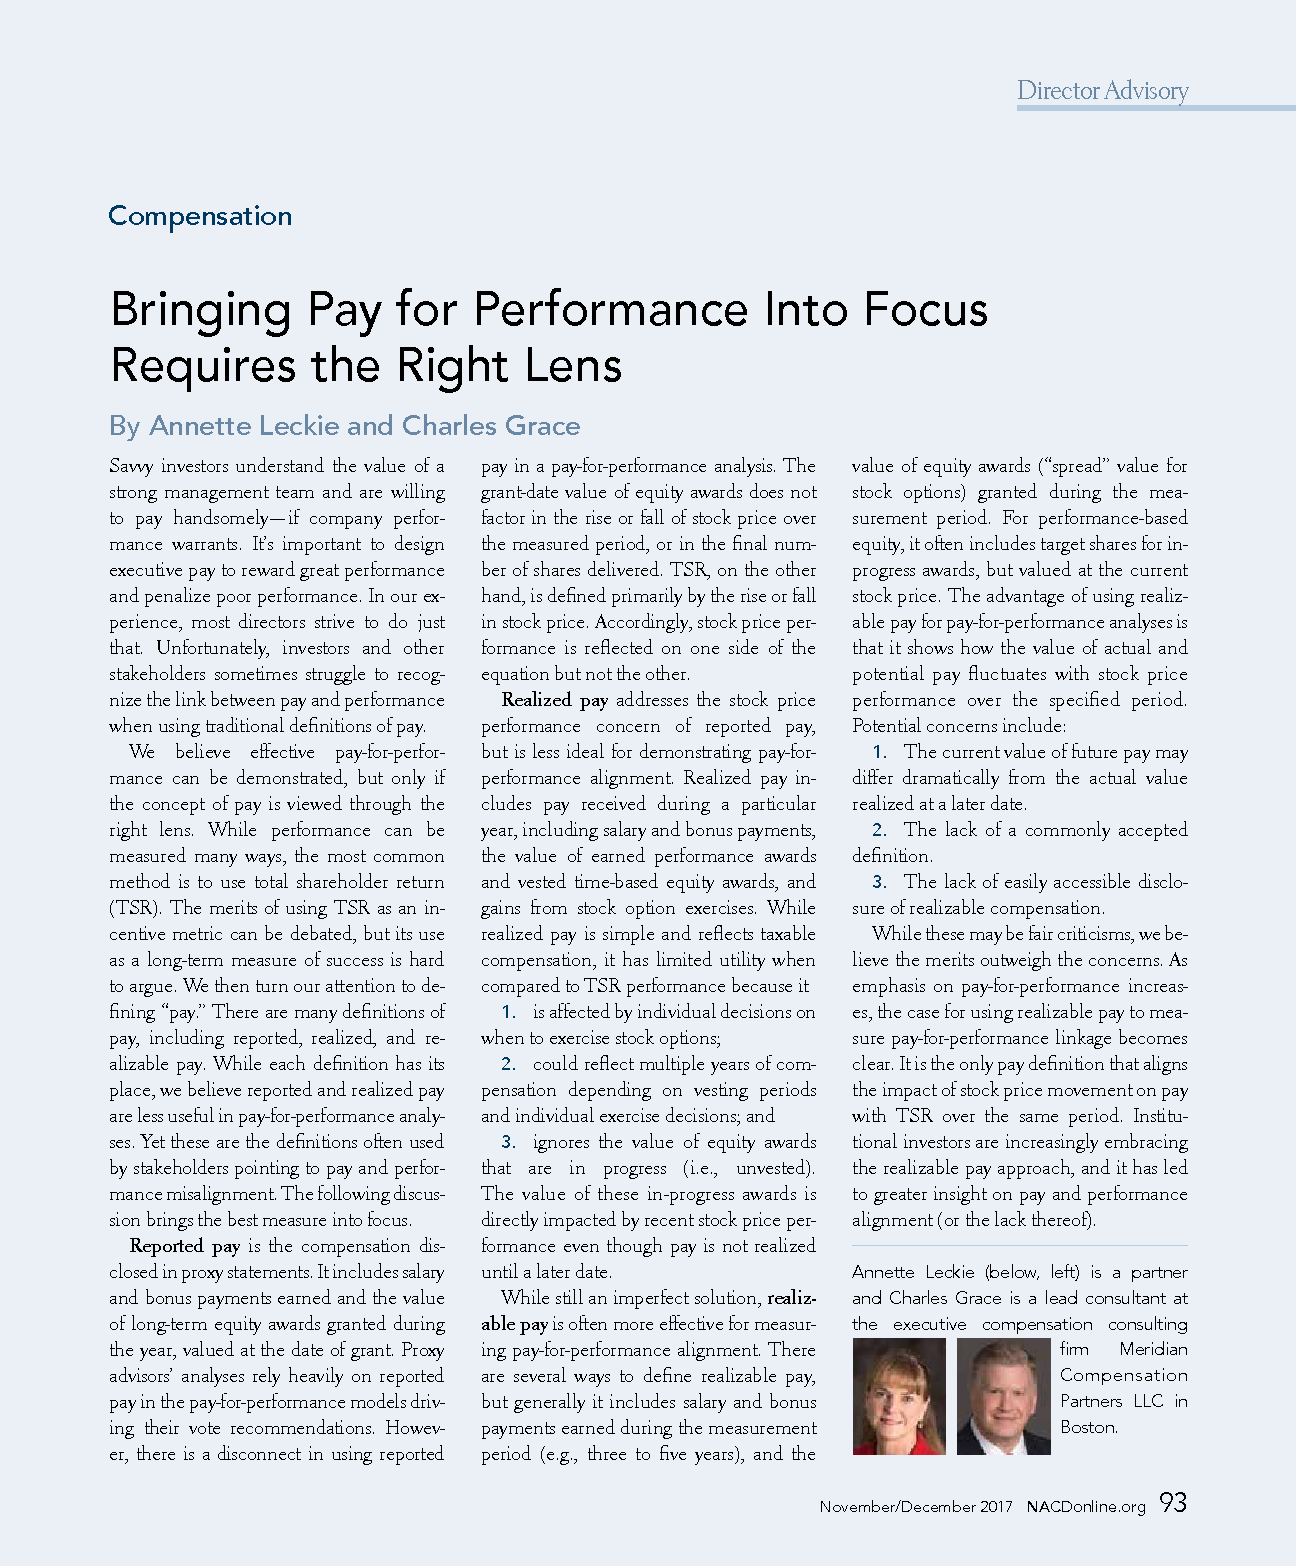 Bringing Pay for Performance Into Focus Requires the Right Lens (PDF)